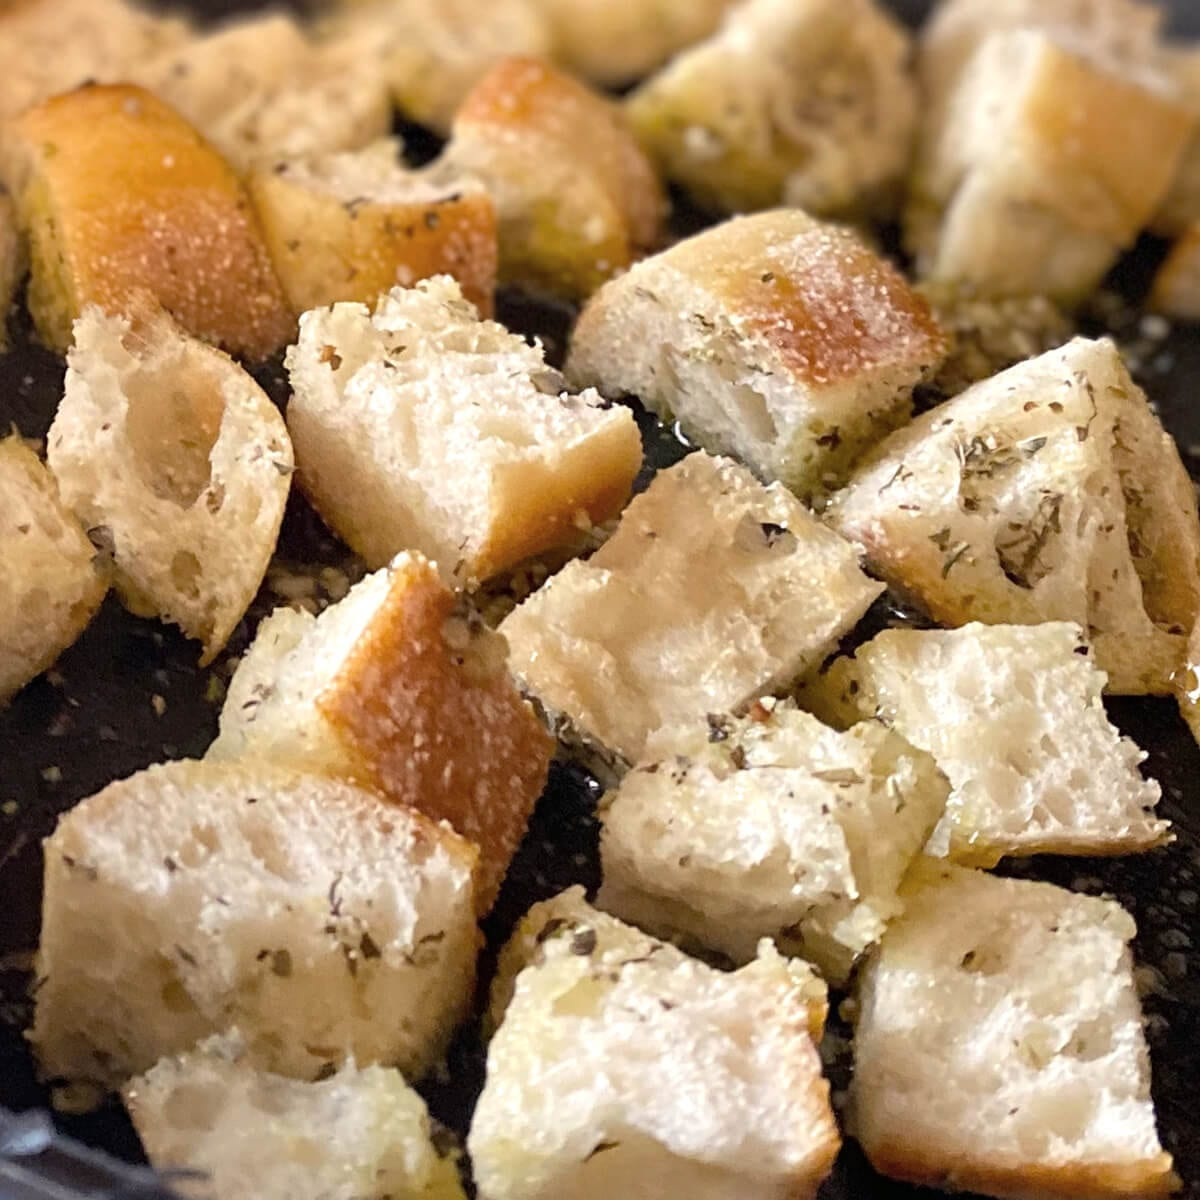 croutons seasoned with herbs